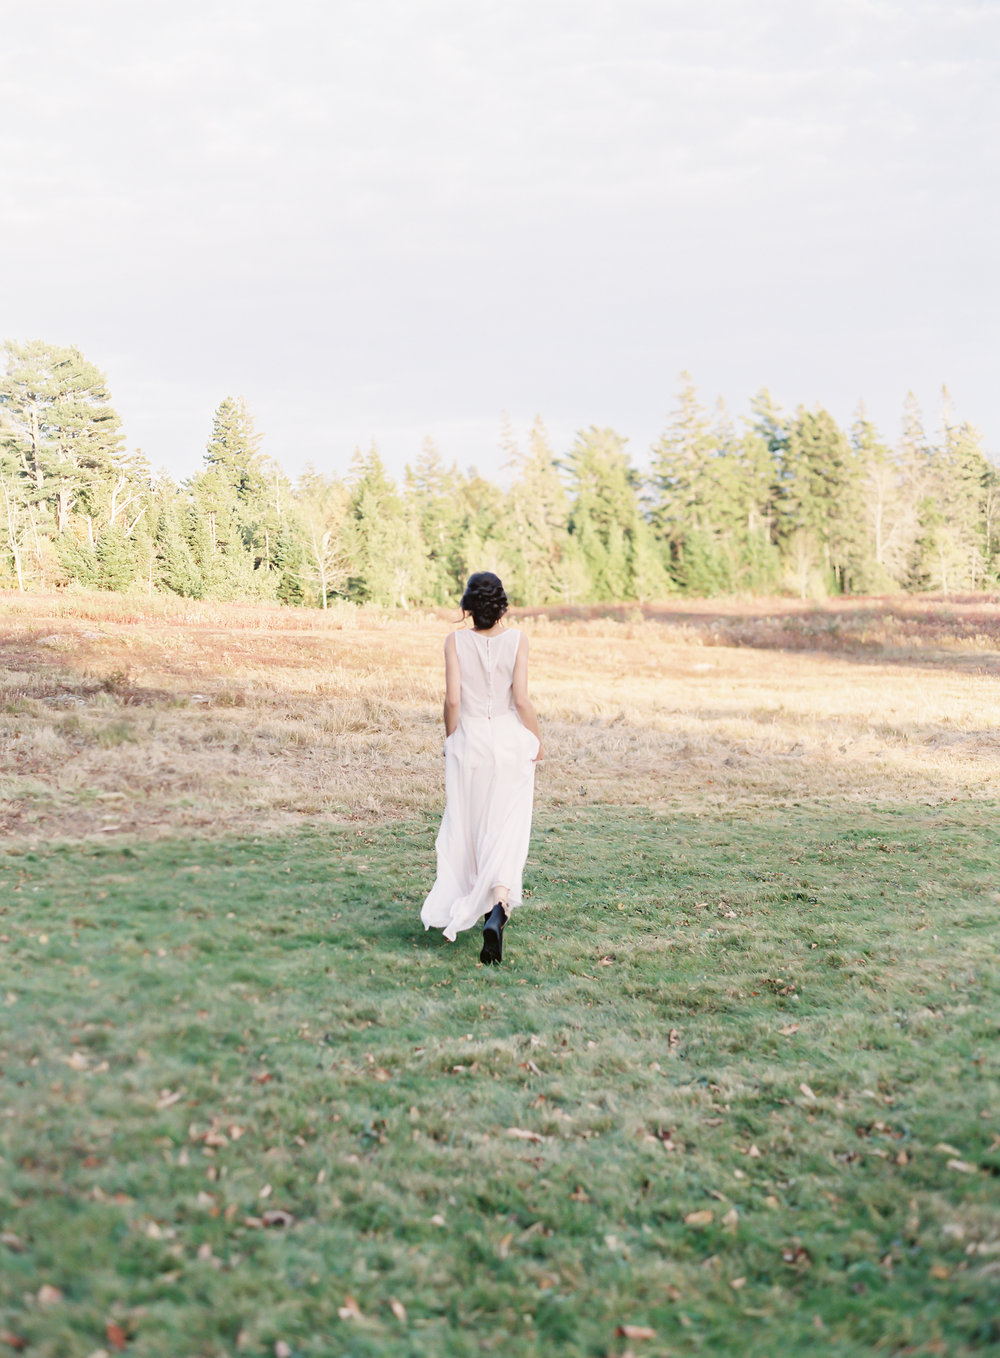 Jacqueline Anne Photography - Forest Editorial - Autumn editorial ON FILM-26.jpg